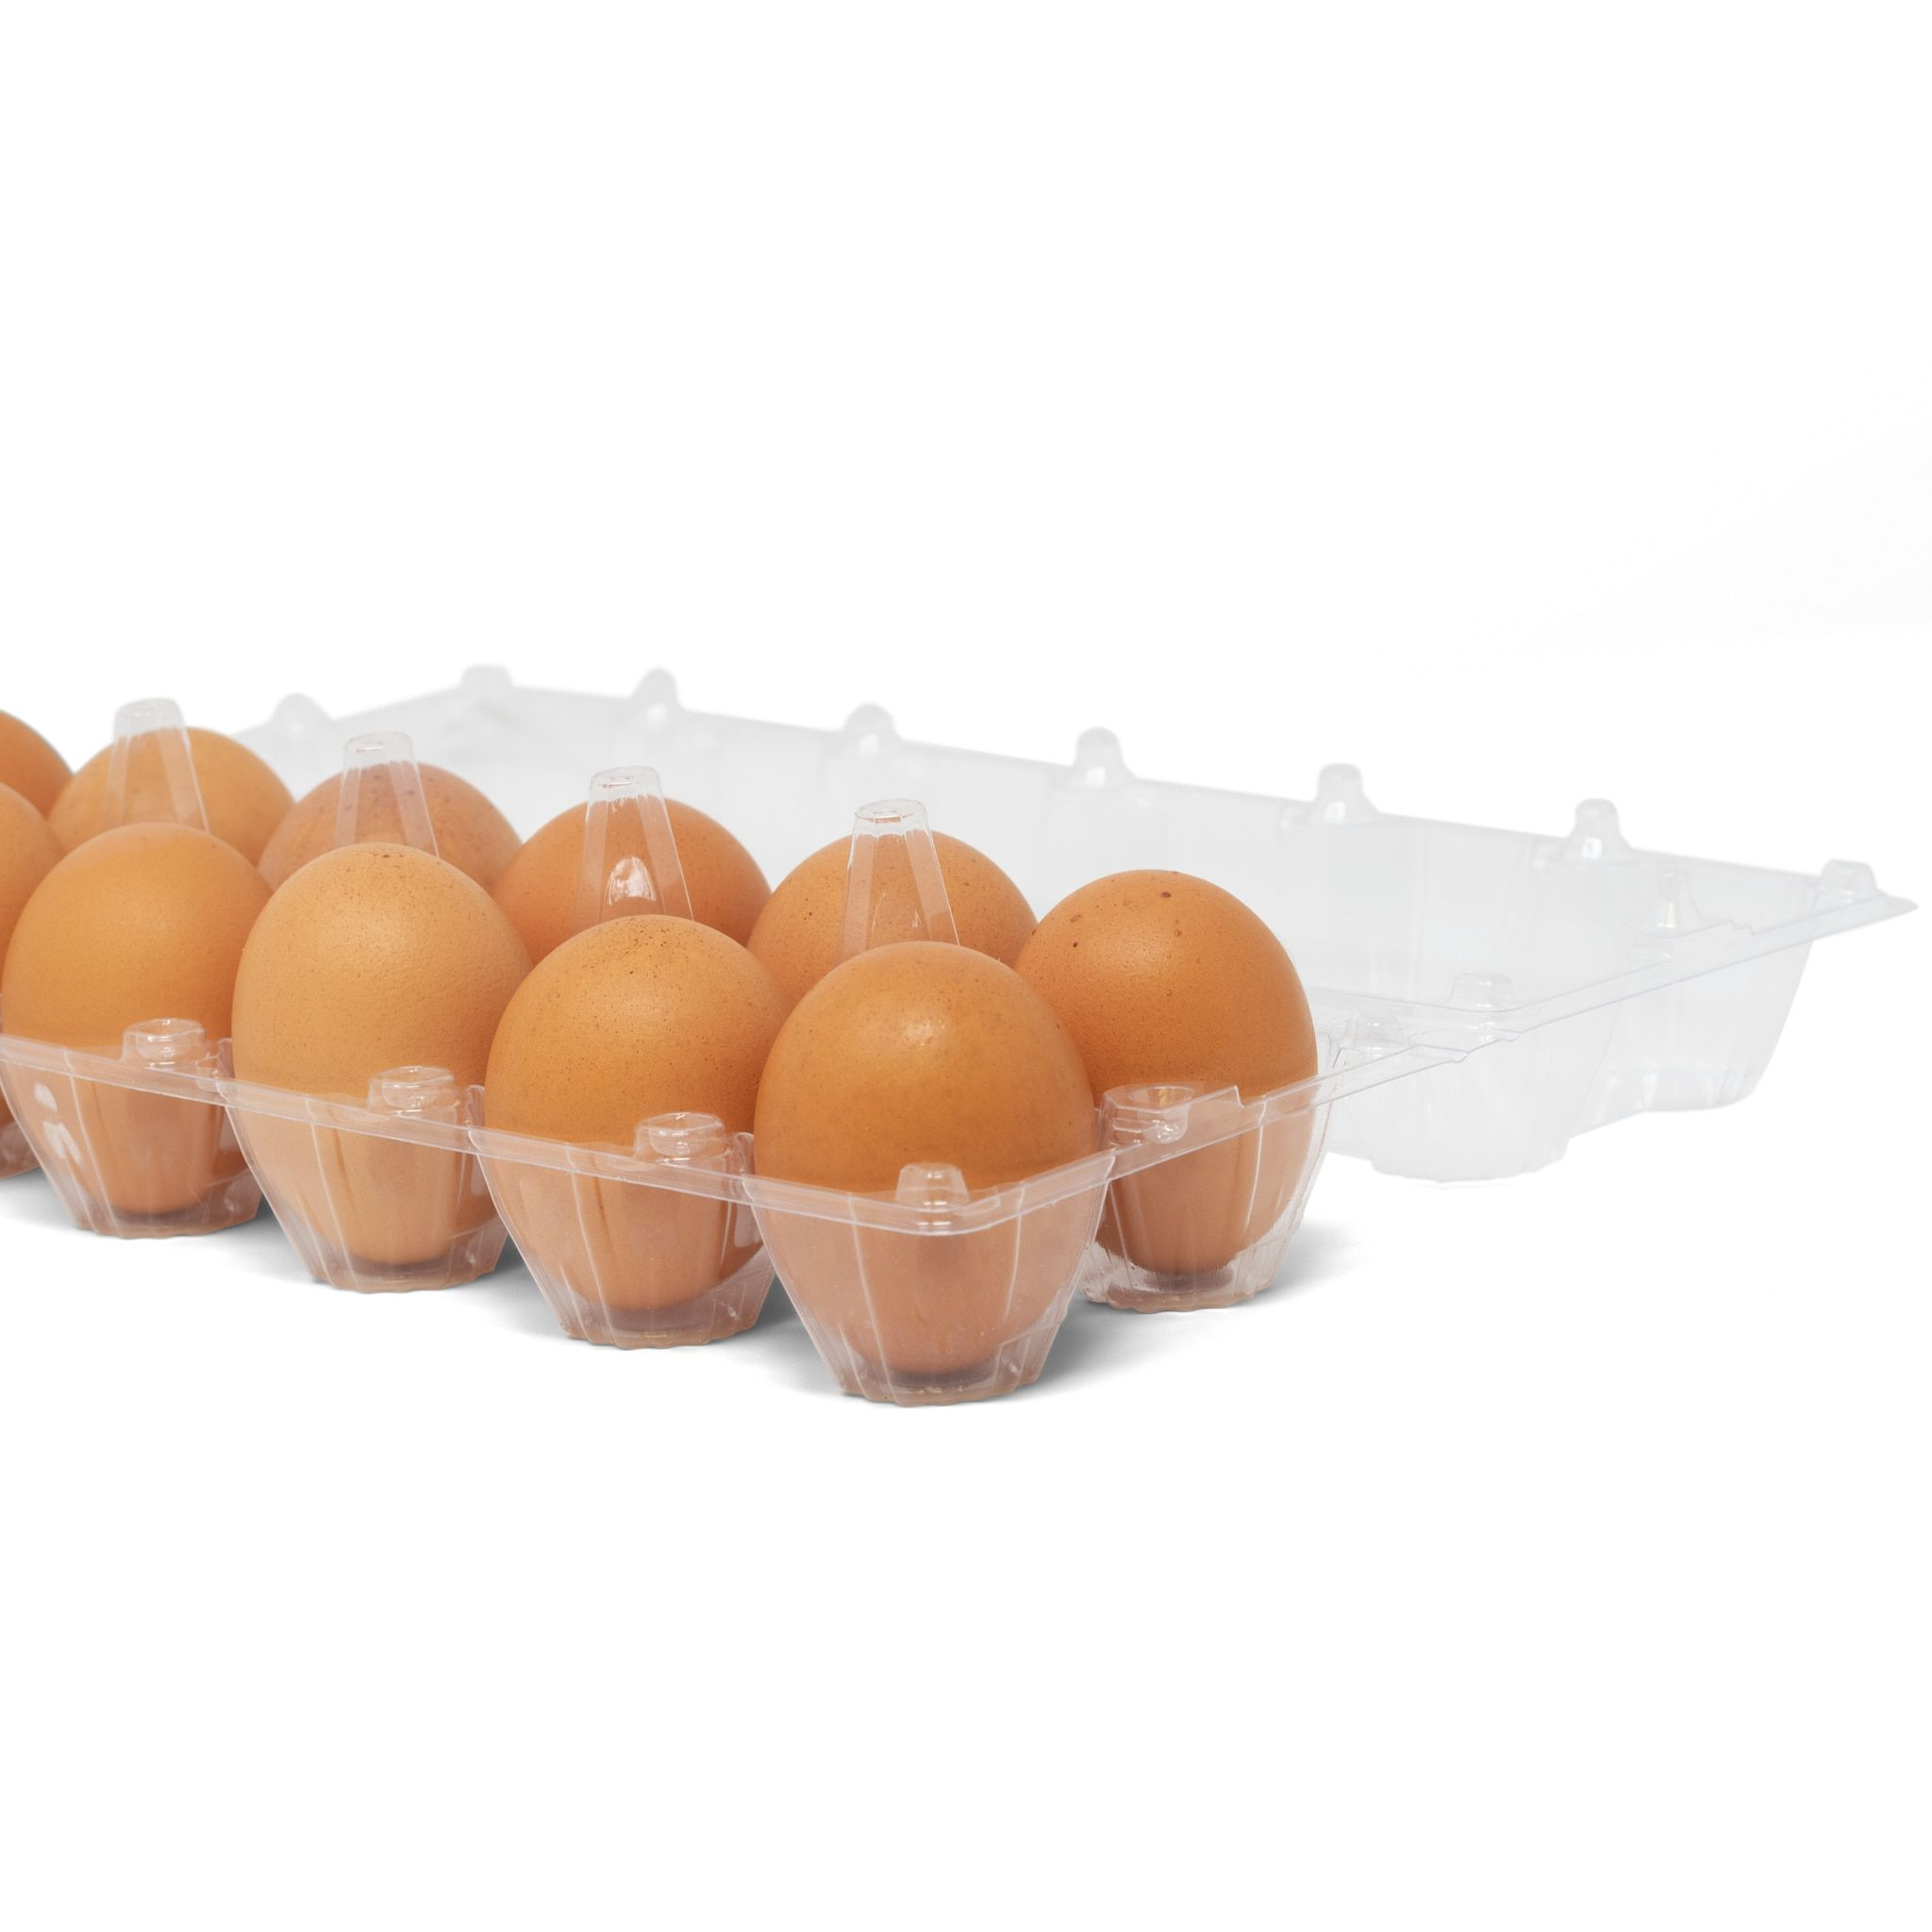 50 Pack Of Egg Cartons Bulk Clear Plastic Egg Cartons 50 Pack Wholesale Chicken Egg Cartons For Farmers Agricultural Industries And More In 2020 Egg Carton Chicken Eggs Plastic Eggs